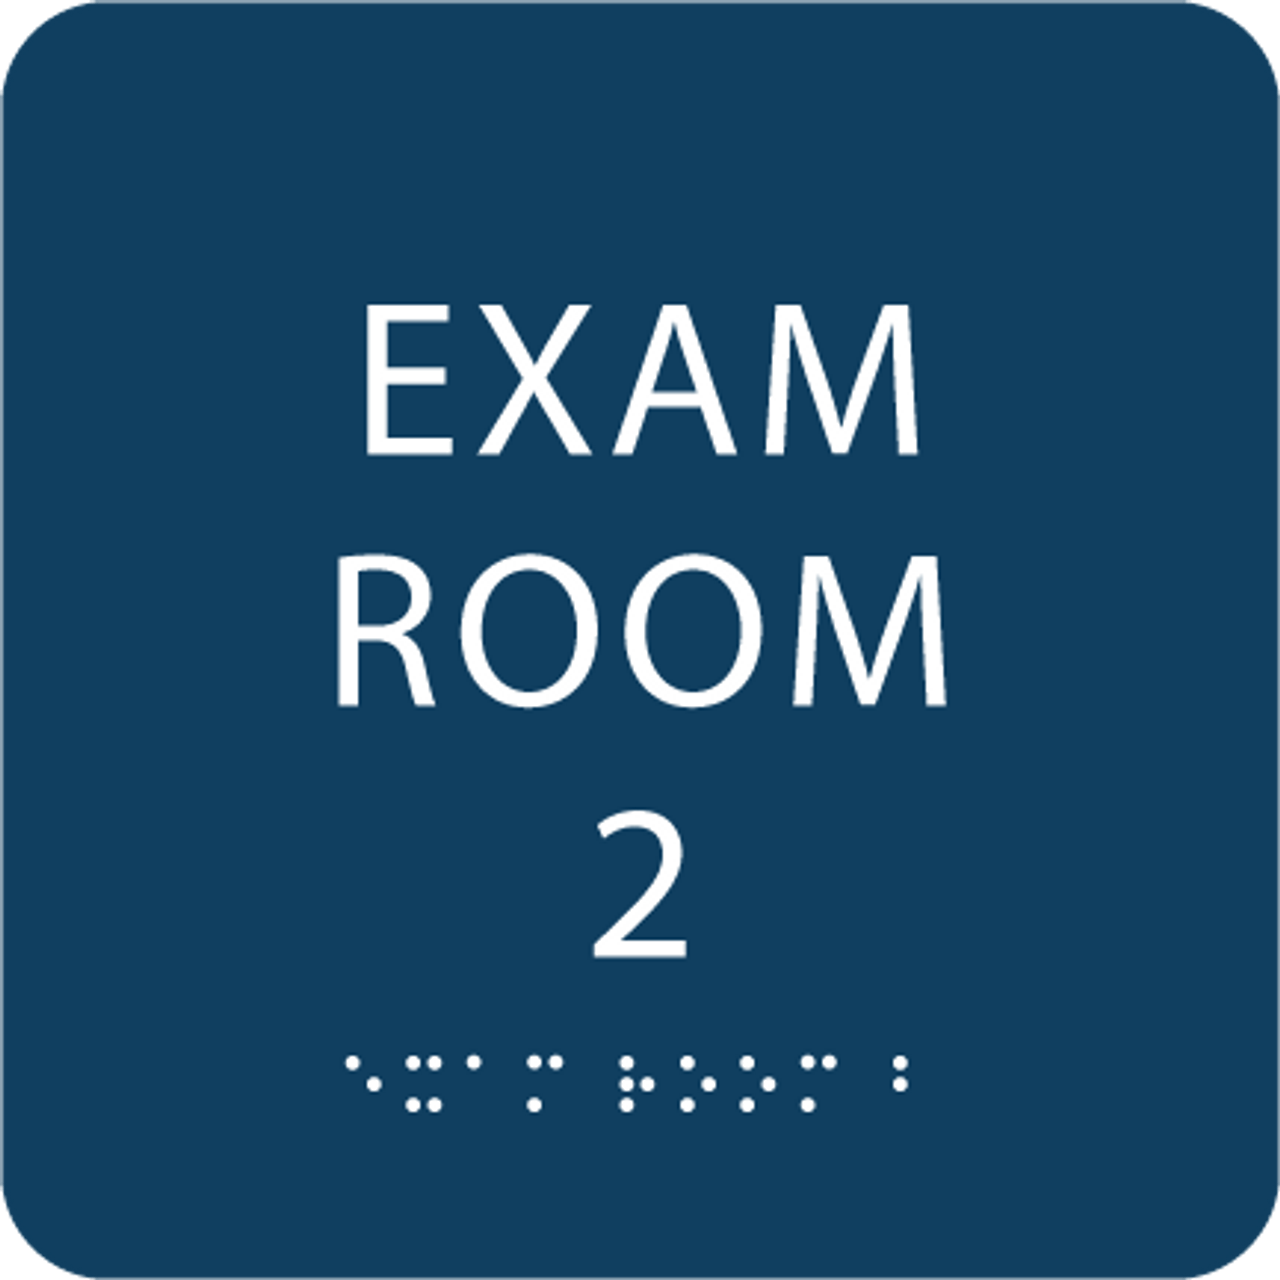 Dark BlueTactile exam room sign